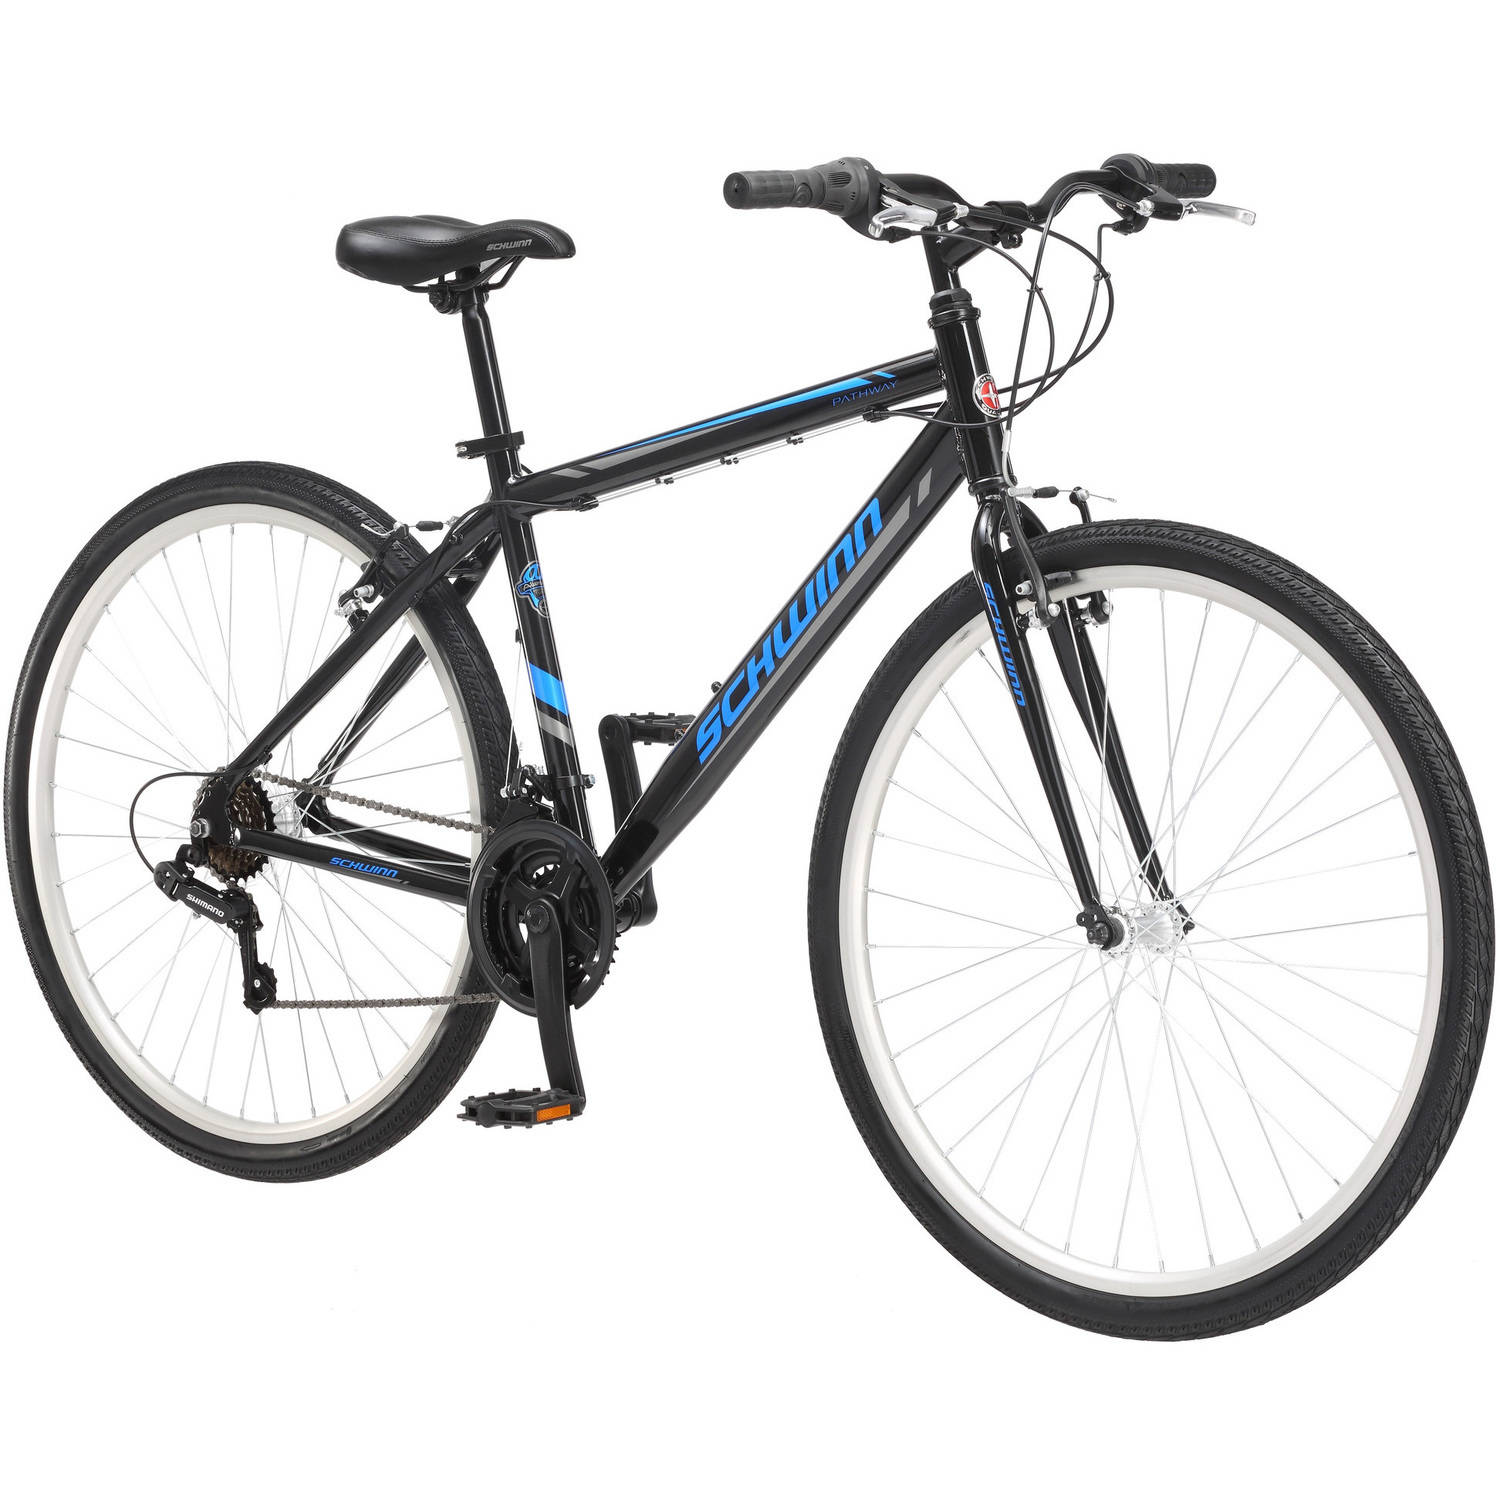 700c Schwinn Pathway Men's Multi-Use Bike, Black